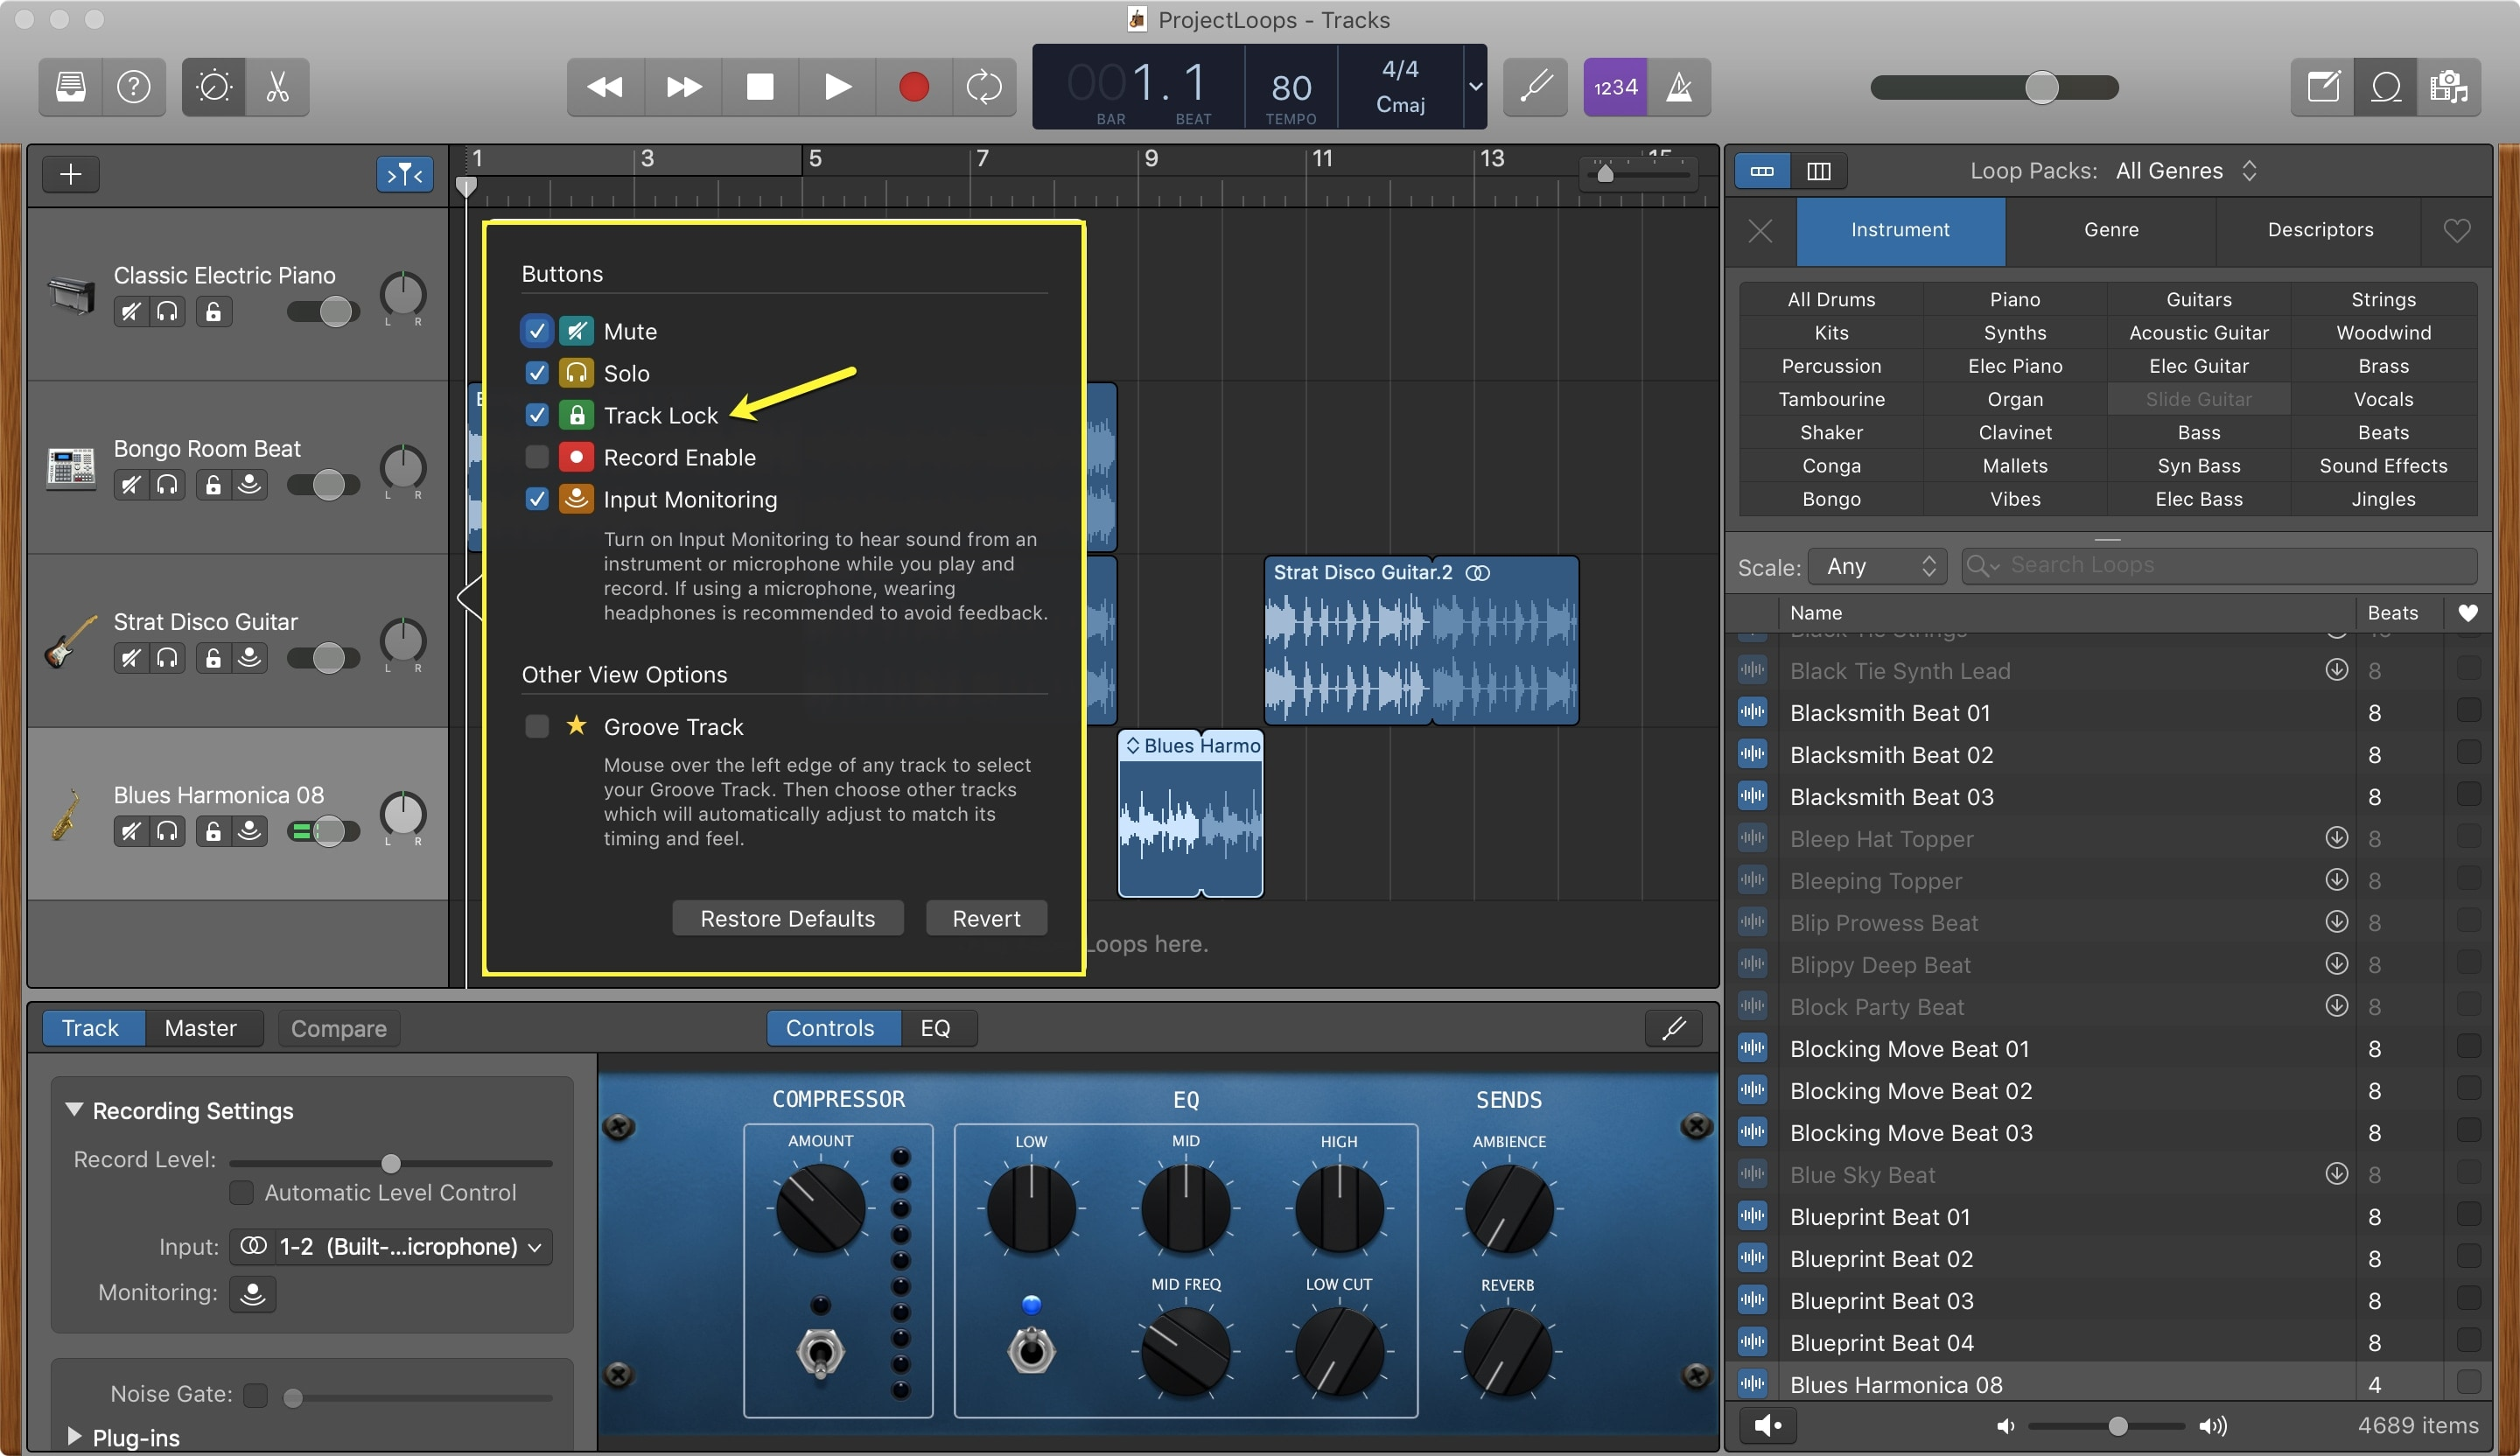 How to lock and unlock tracks in GarageBand on Mac